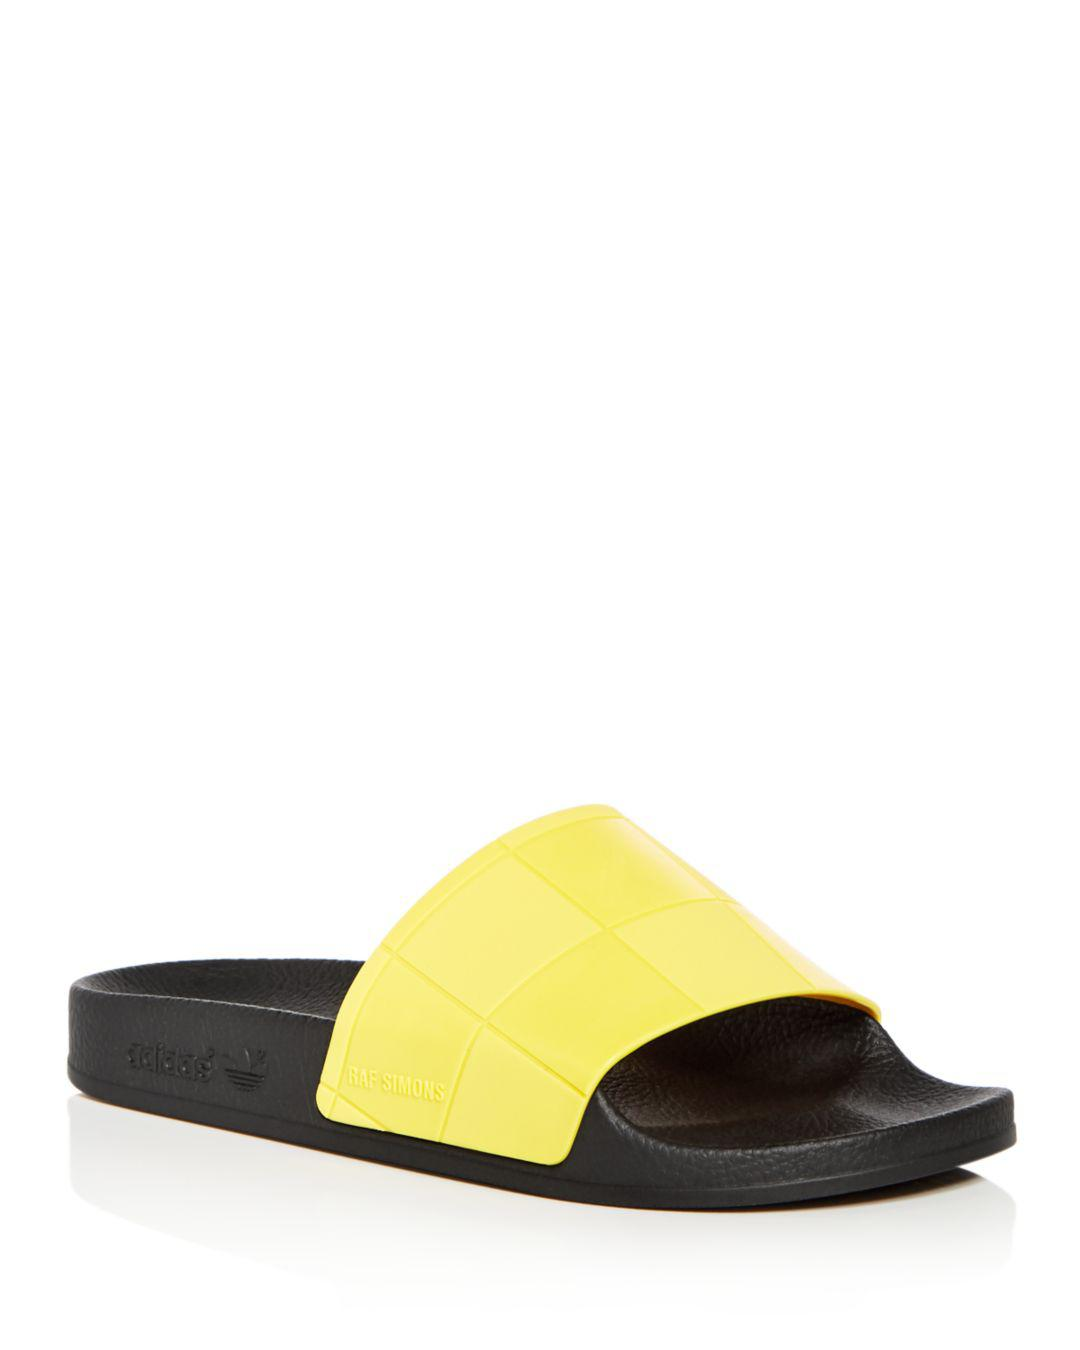 adidas By Raf Simons Rubber Sandals in